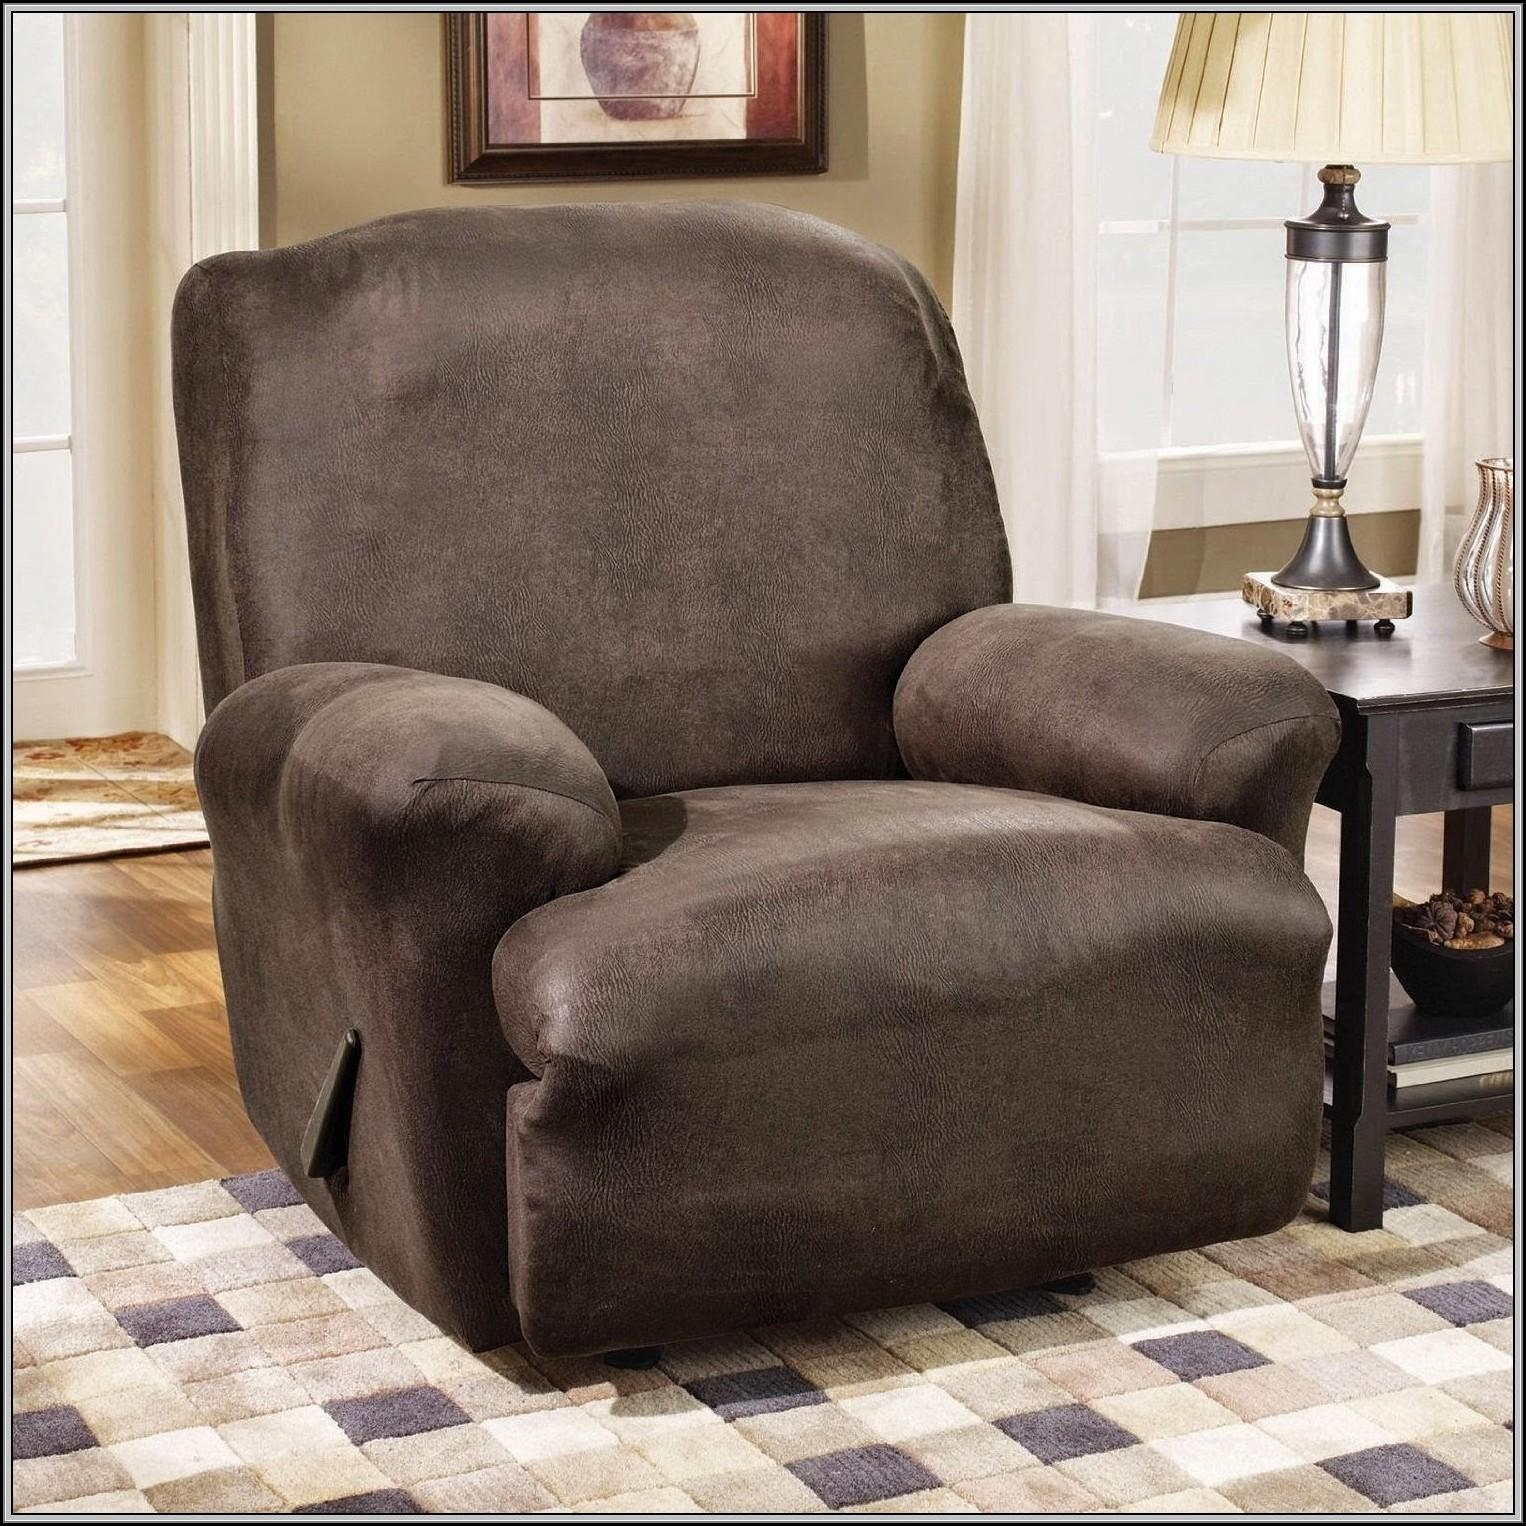 Are There Slipcovers For Leather Sofas – Sofa : Home Furniture Intended For Slipcover For Leather Sofas (Image 5 of 20)